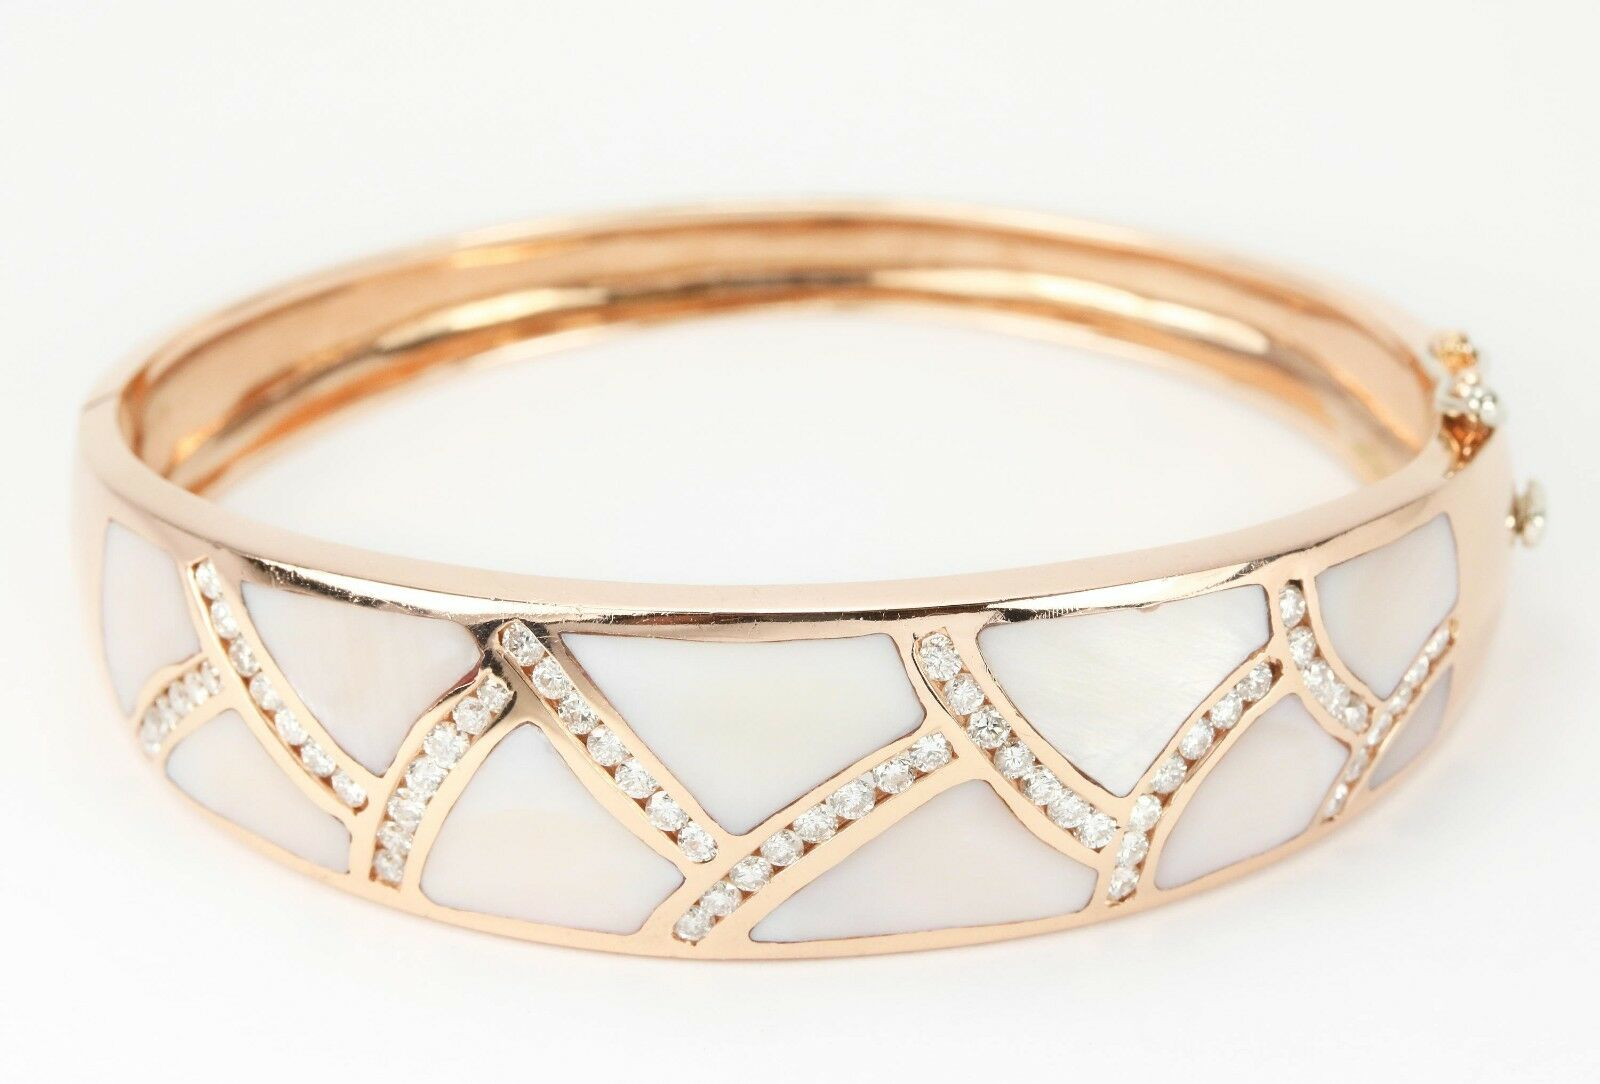 collections rose bangle gold tiff b plated bangles at bracelet brclt star for bracelets with anny gabriella all stainless cz steel shop ny products